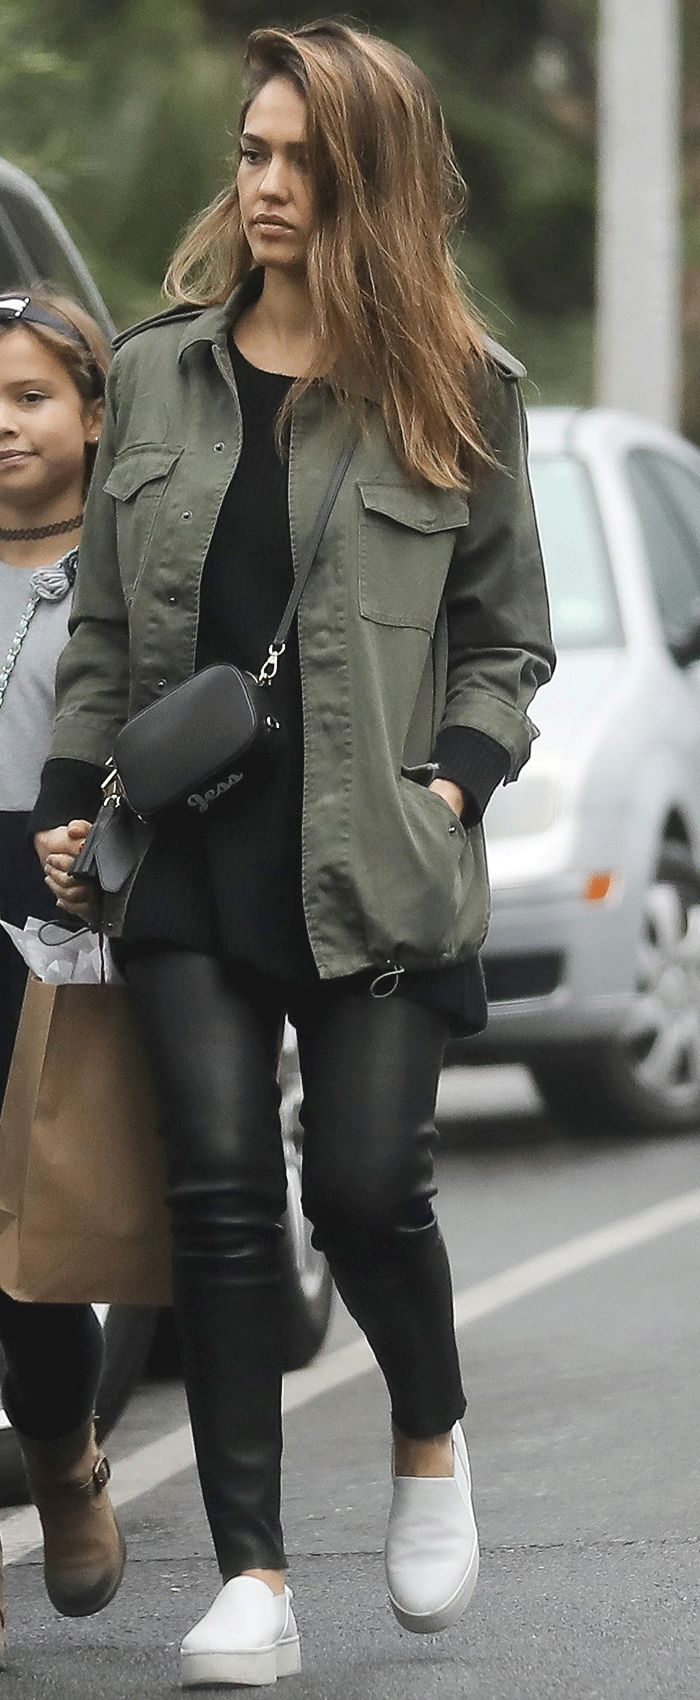 Jessica Alba's Stylish $40 Jacket Is Still Available  via @WhoWhatWear